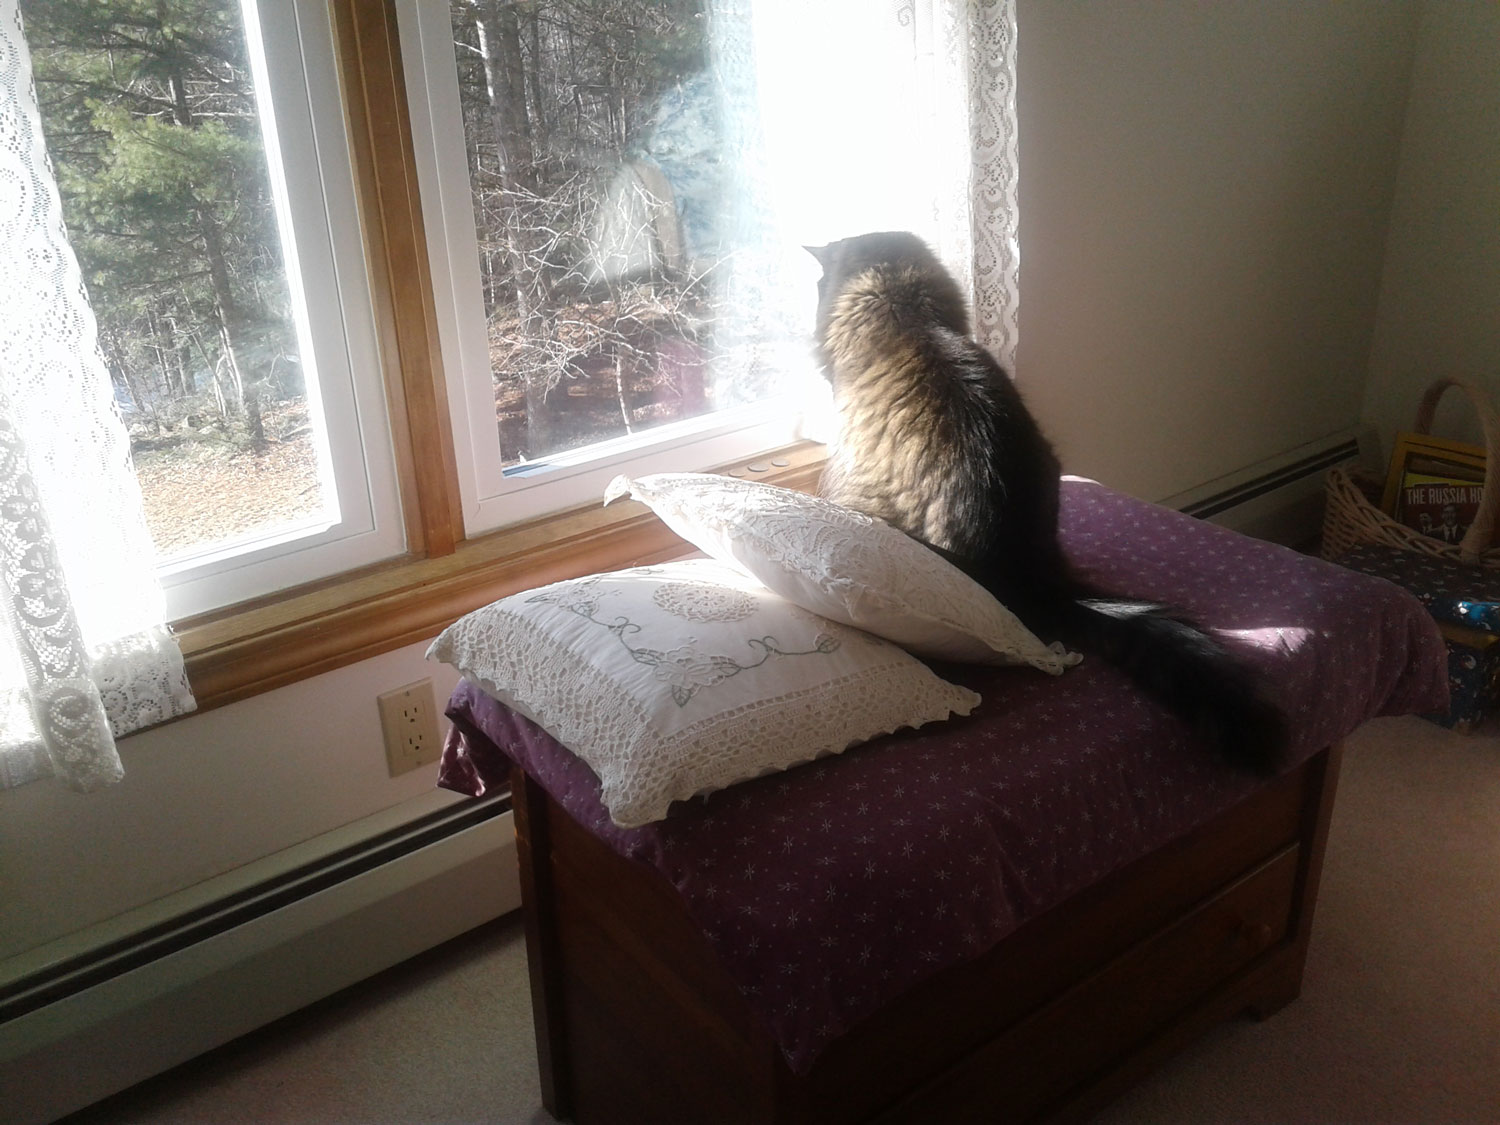 Meet Sam. Marianne M. sent pics of her handsome, grey, green-eyed cat Sam, hanging out on his favorite blanket chest, alternately napping and watching the squirrels and birds outside.